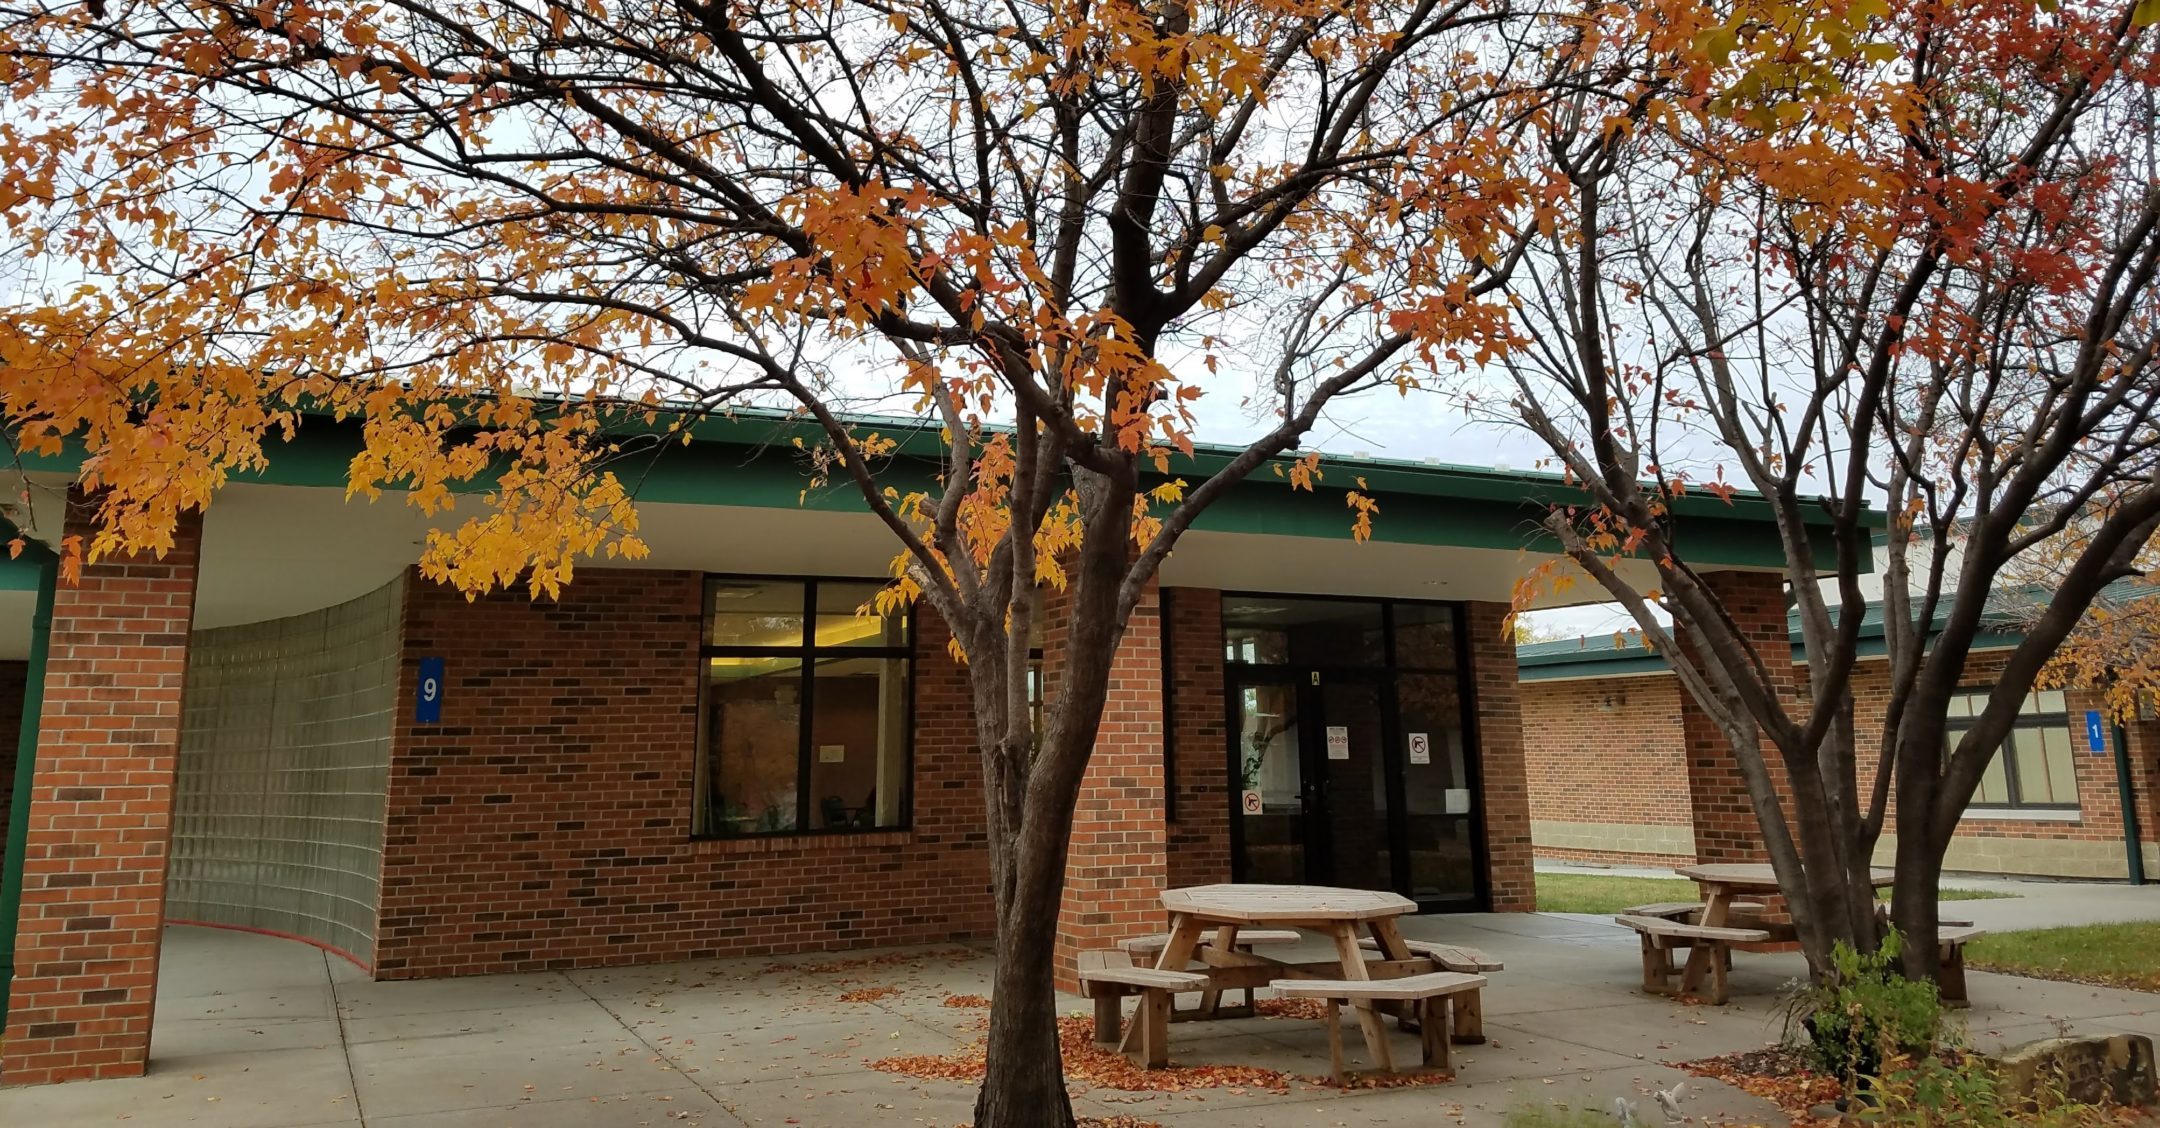 Entrance to cafeteria building showing glass opaque brick wall on the left, red brick wall with large window and a large automatic door on front facing wall. Three brick pillars and large concrete patio with two round picnic tables out front. Three large trees with leaves in fall colors out front.